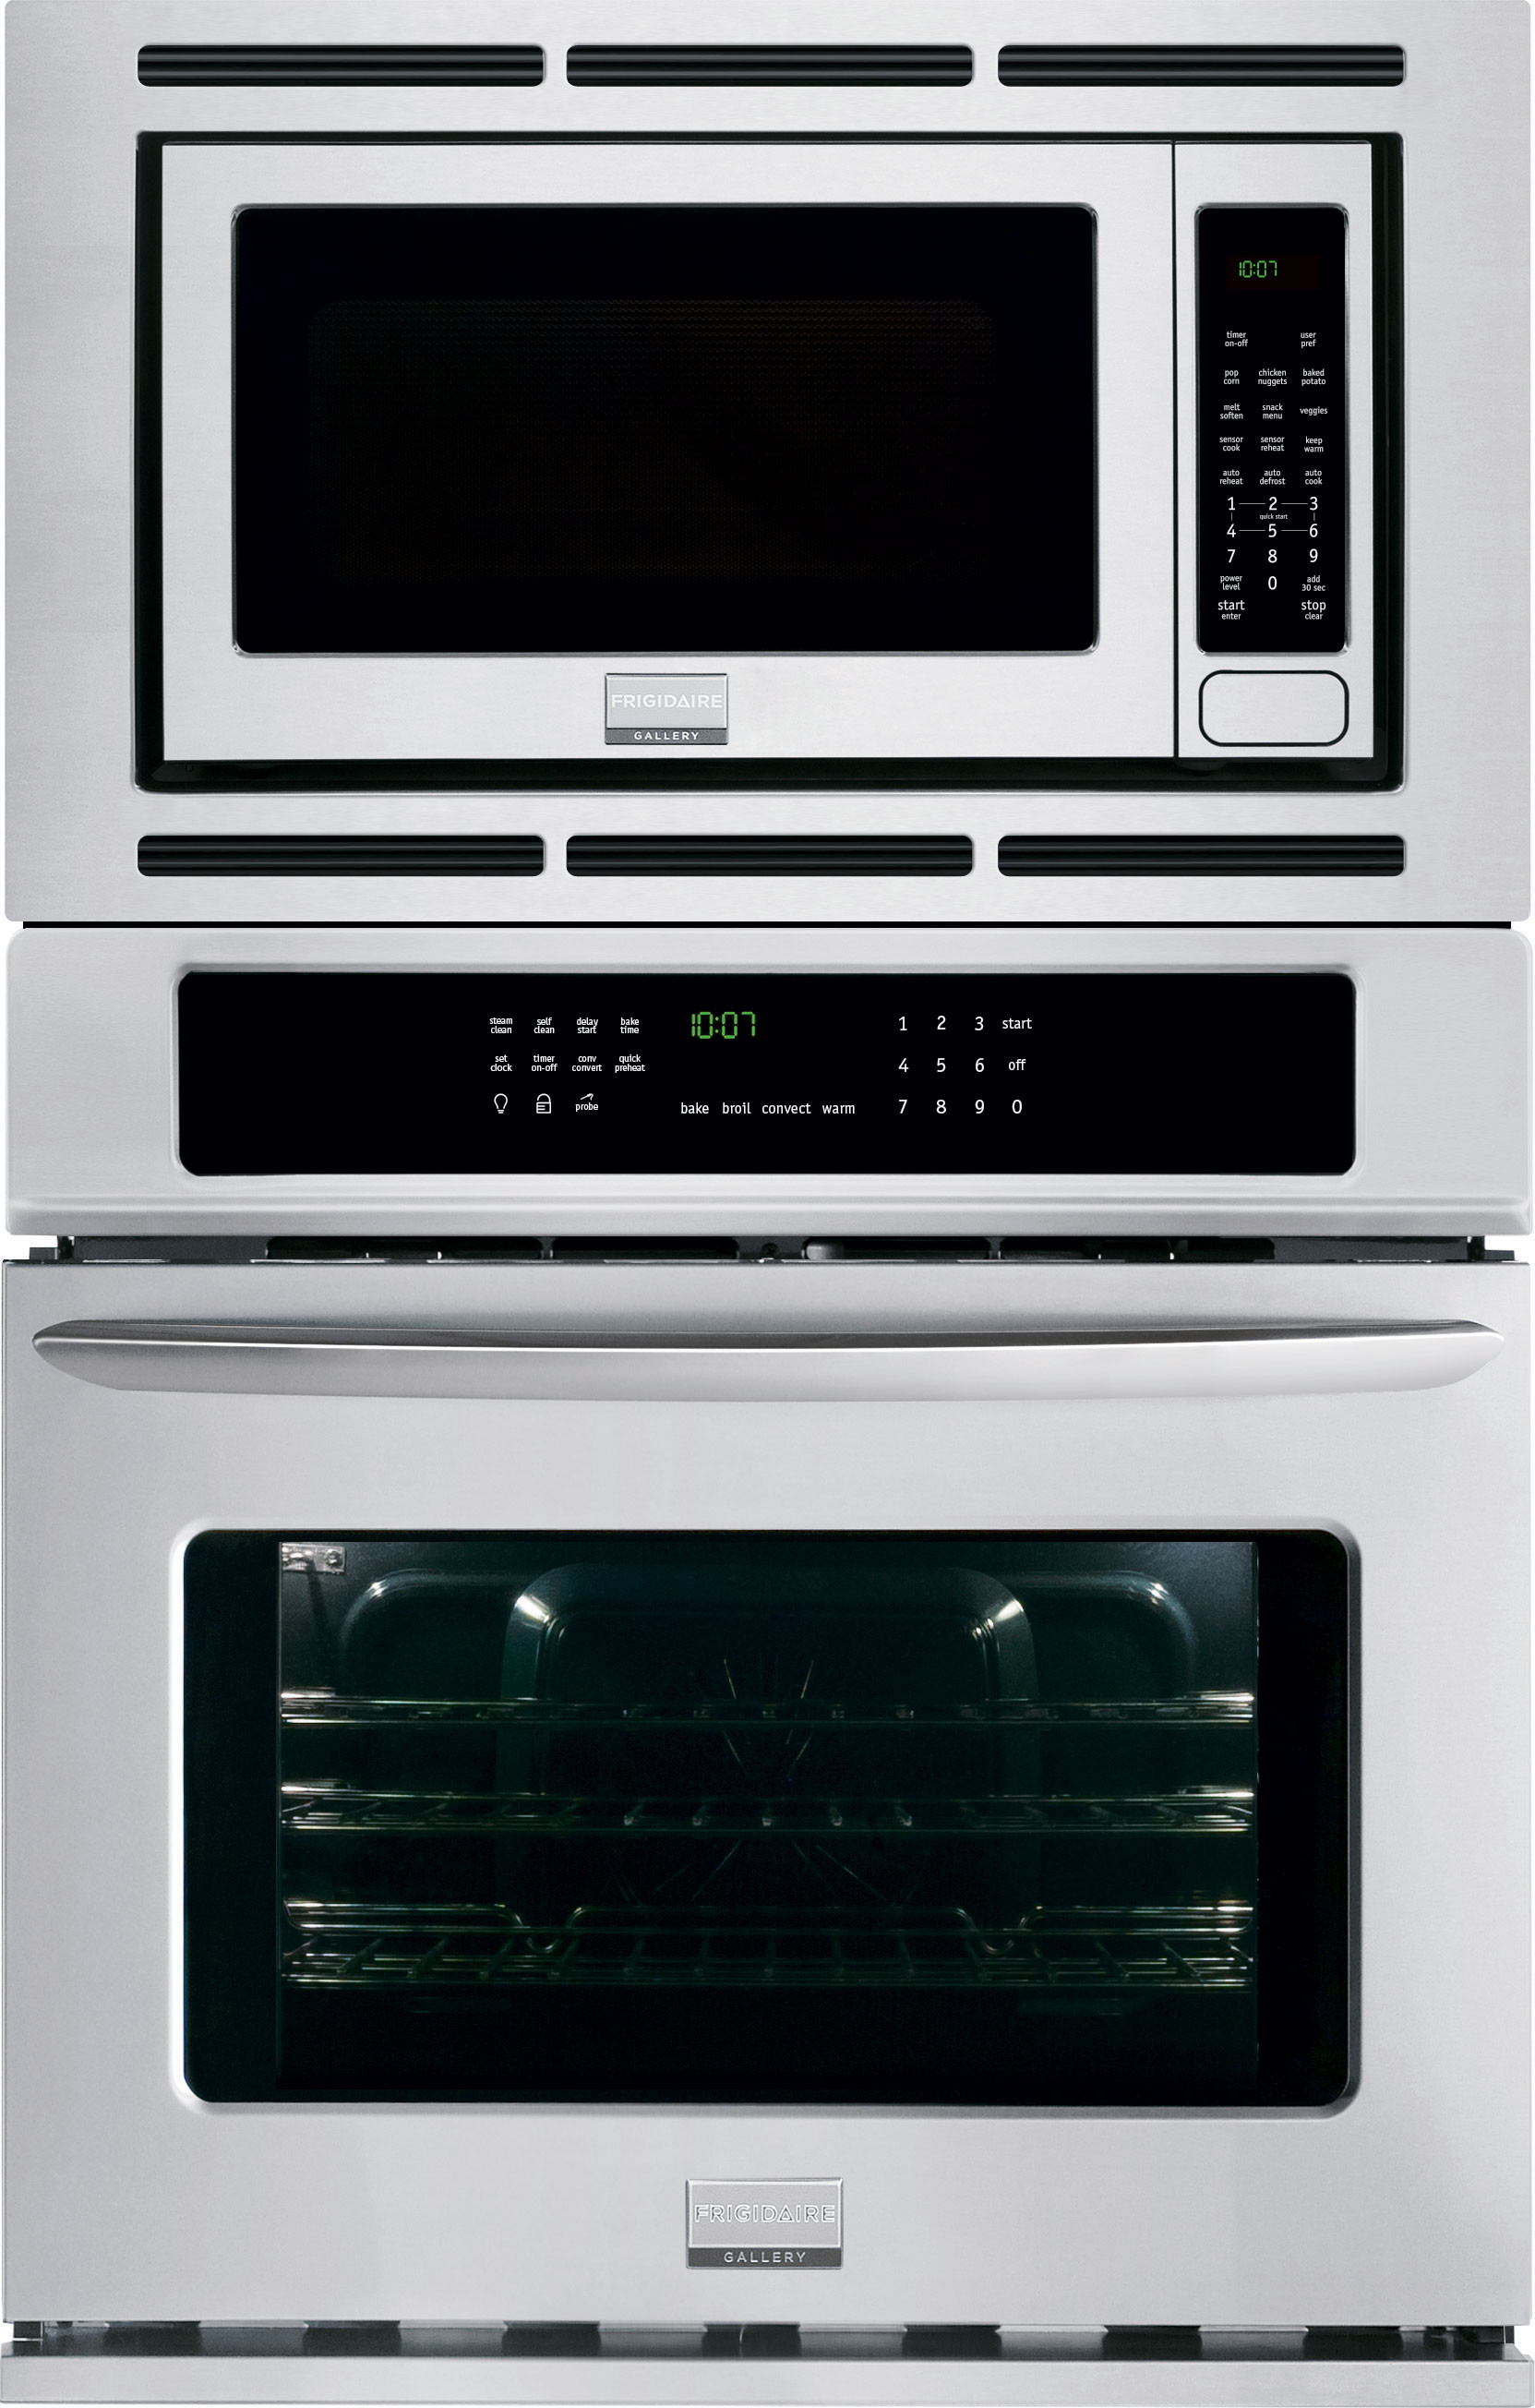 Combination Microwave Oven Frigidaire Gallery Series Fgmc2765pf